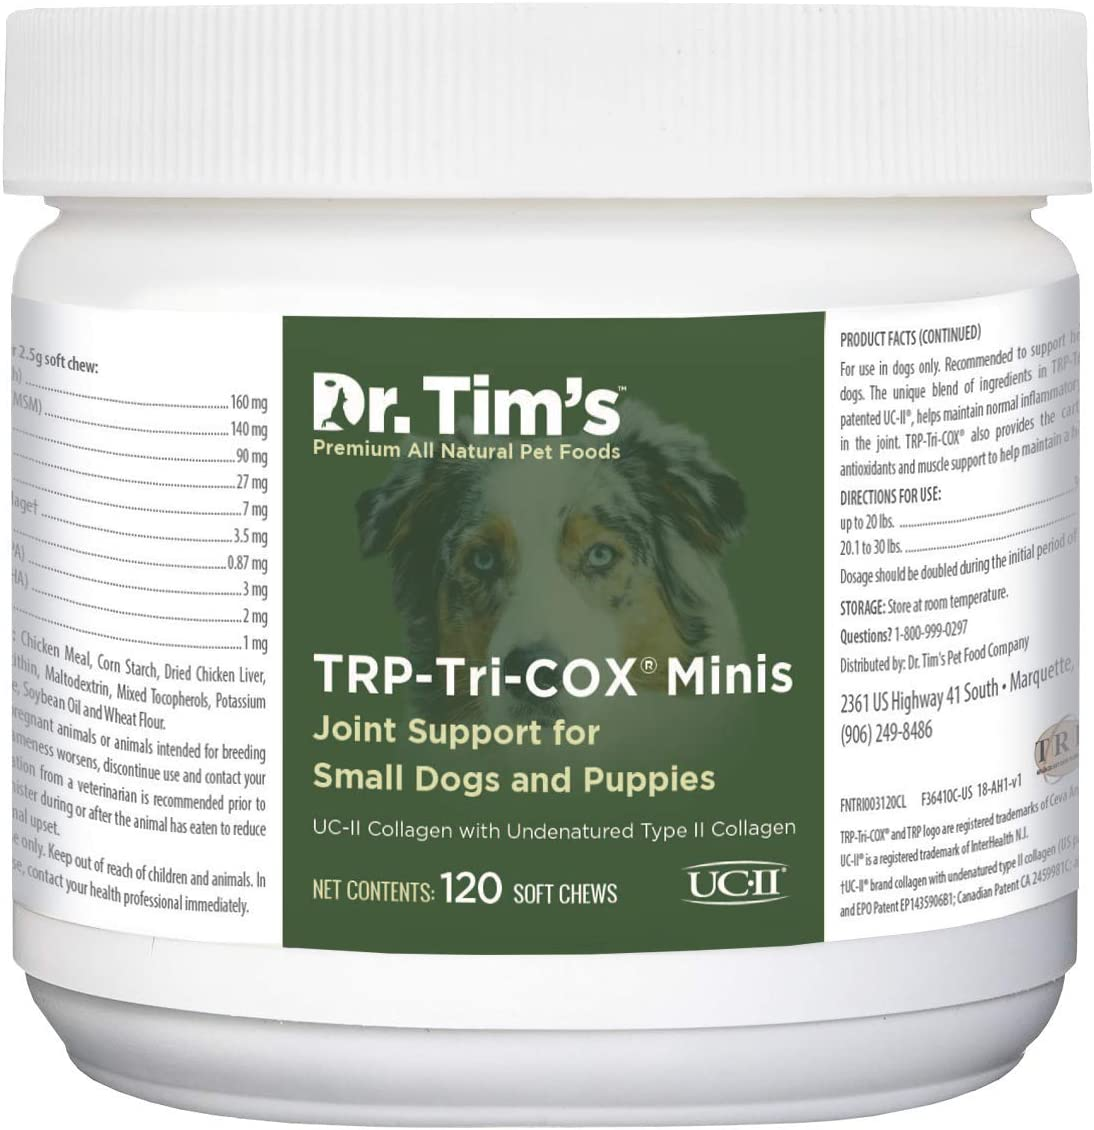 Dr. Tim's Tri-Cox Joint Mini Mobility Chews for Chronic Joint Pain or Joint Injuries Small Breeds, 120 ct, Green (TRICOXMINI120)